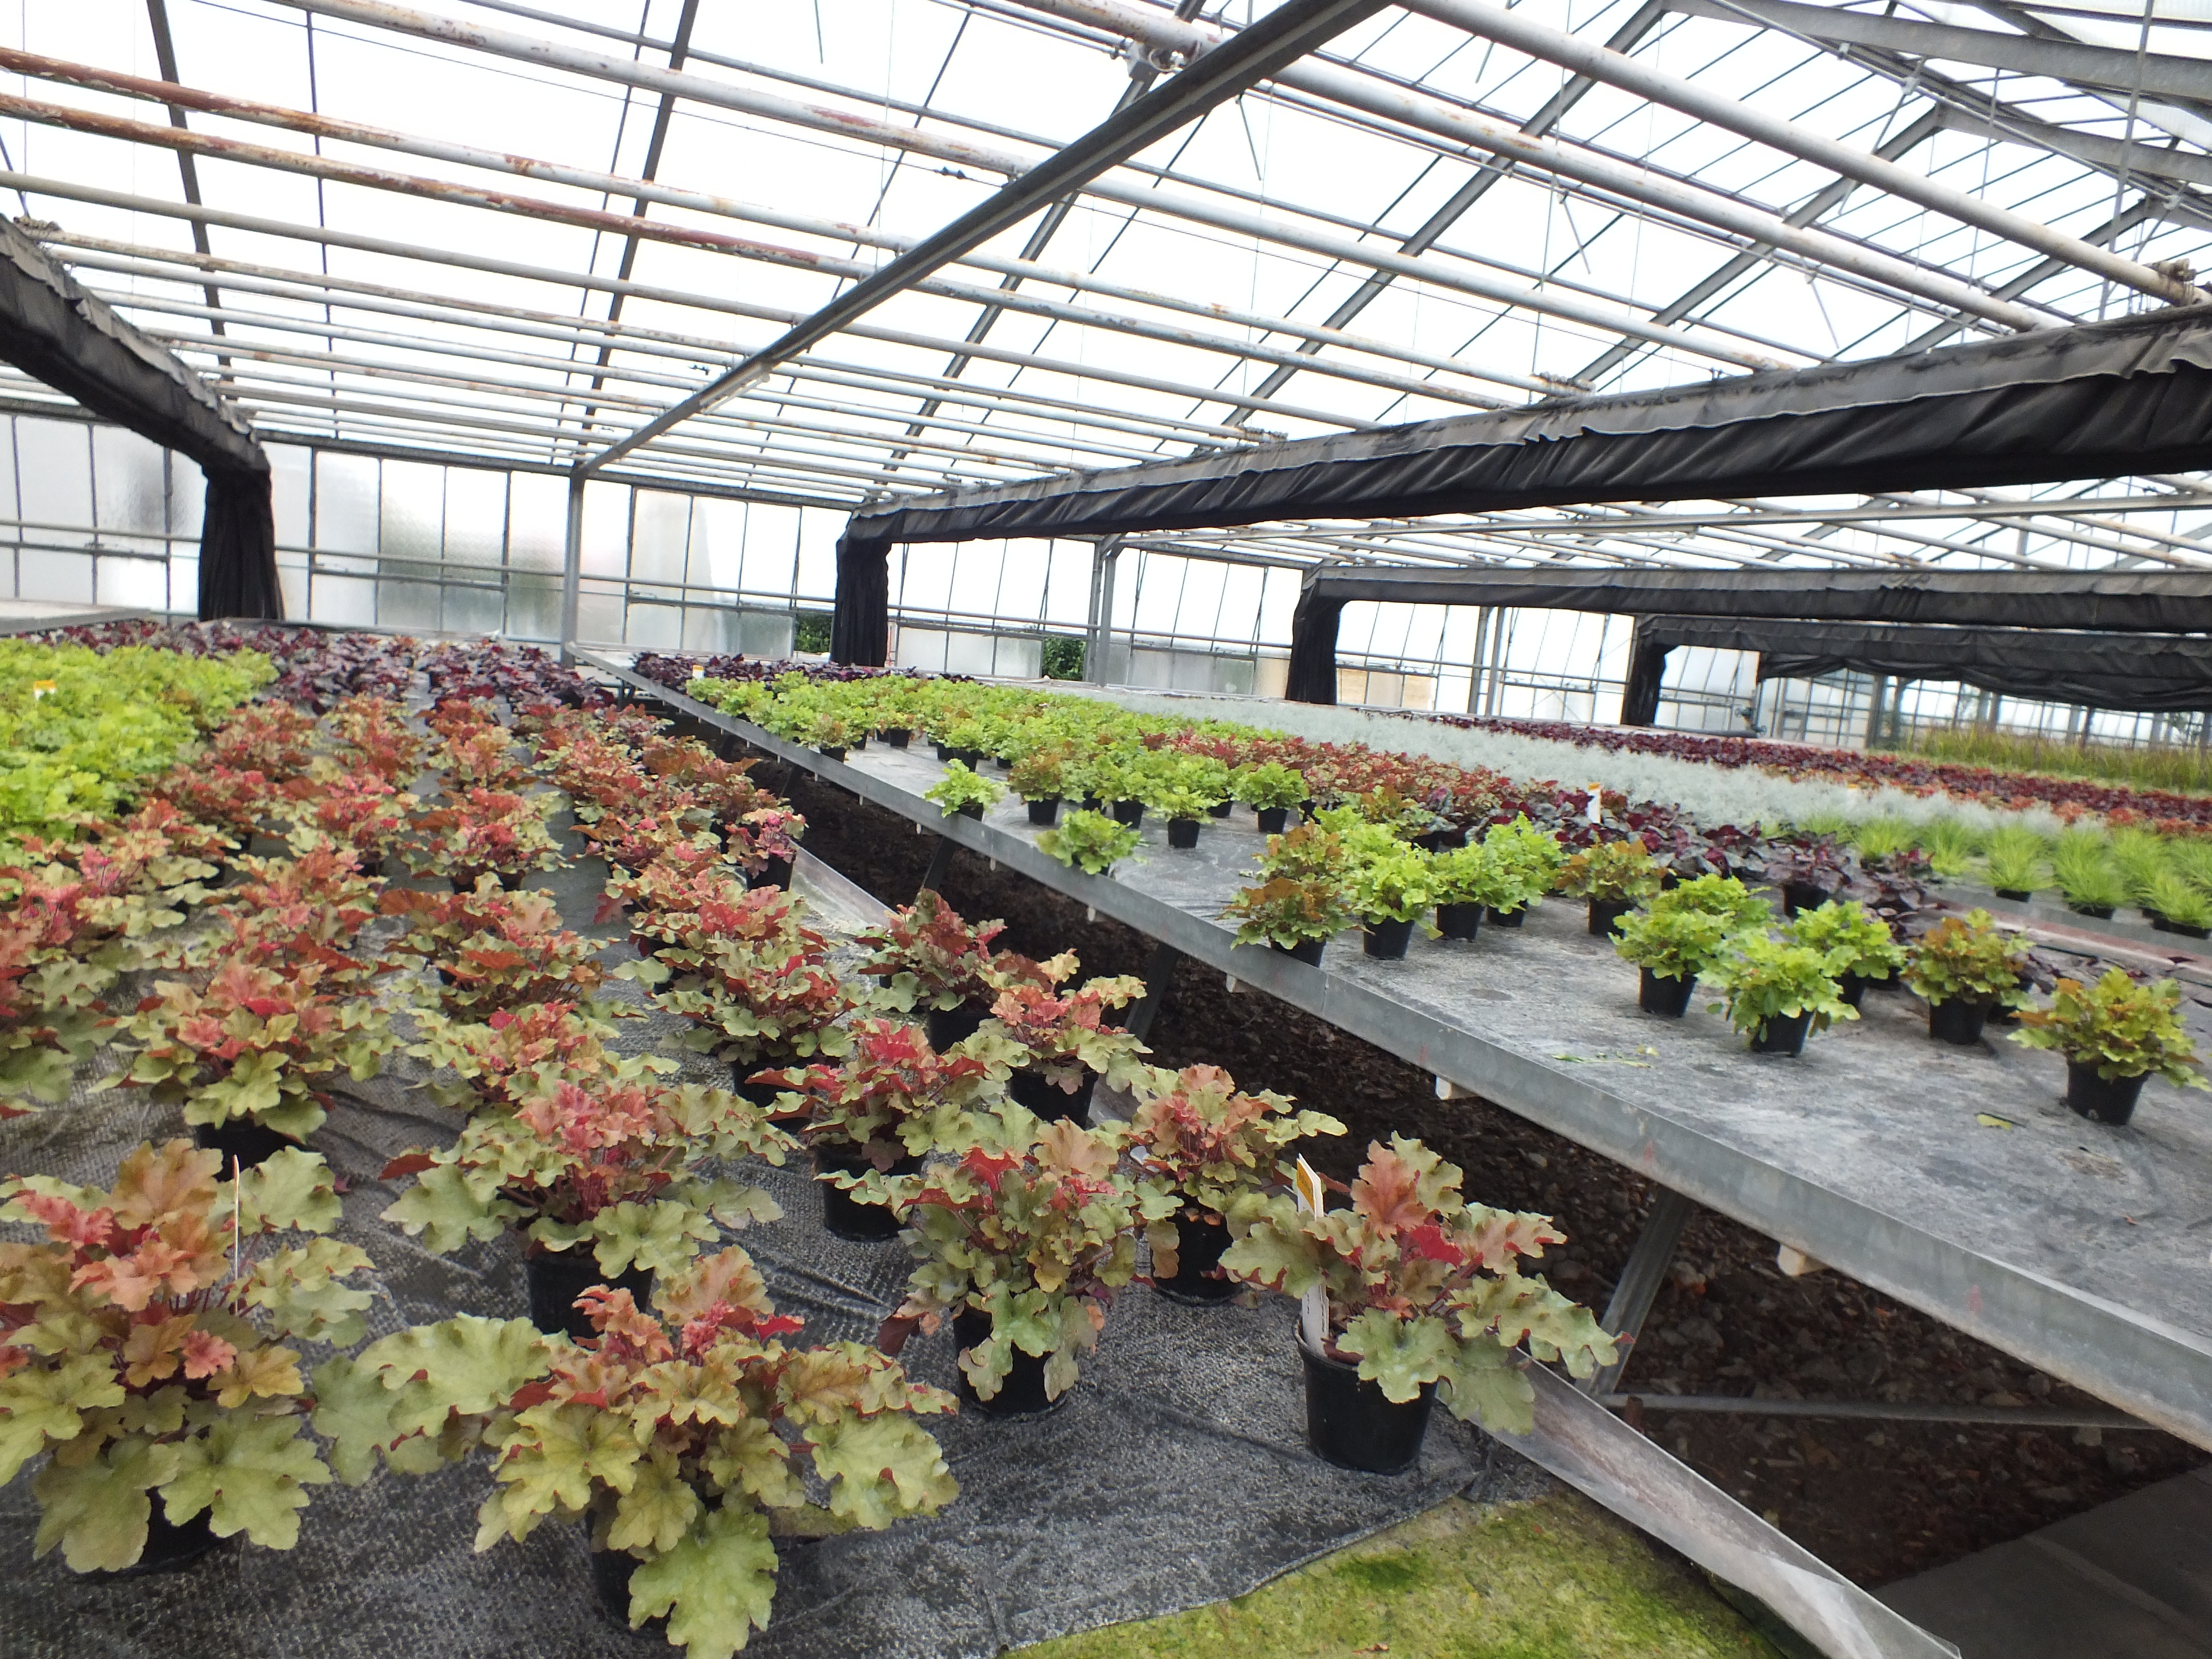 Plants_in_SolaWrap_Greenhouses_where_OK._No_damage_to_Crop_04.jpg